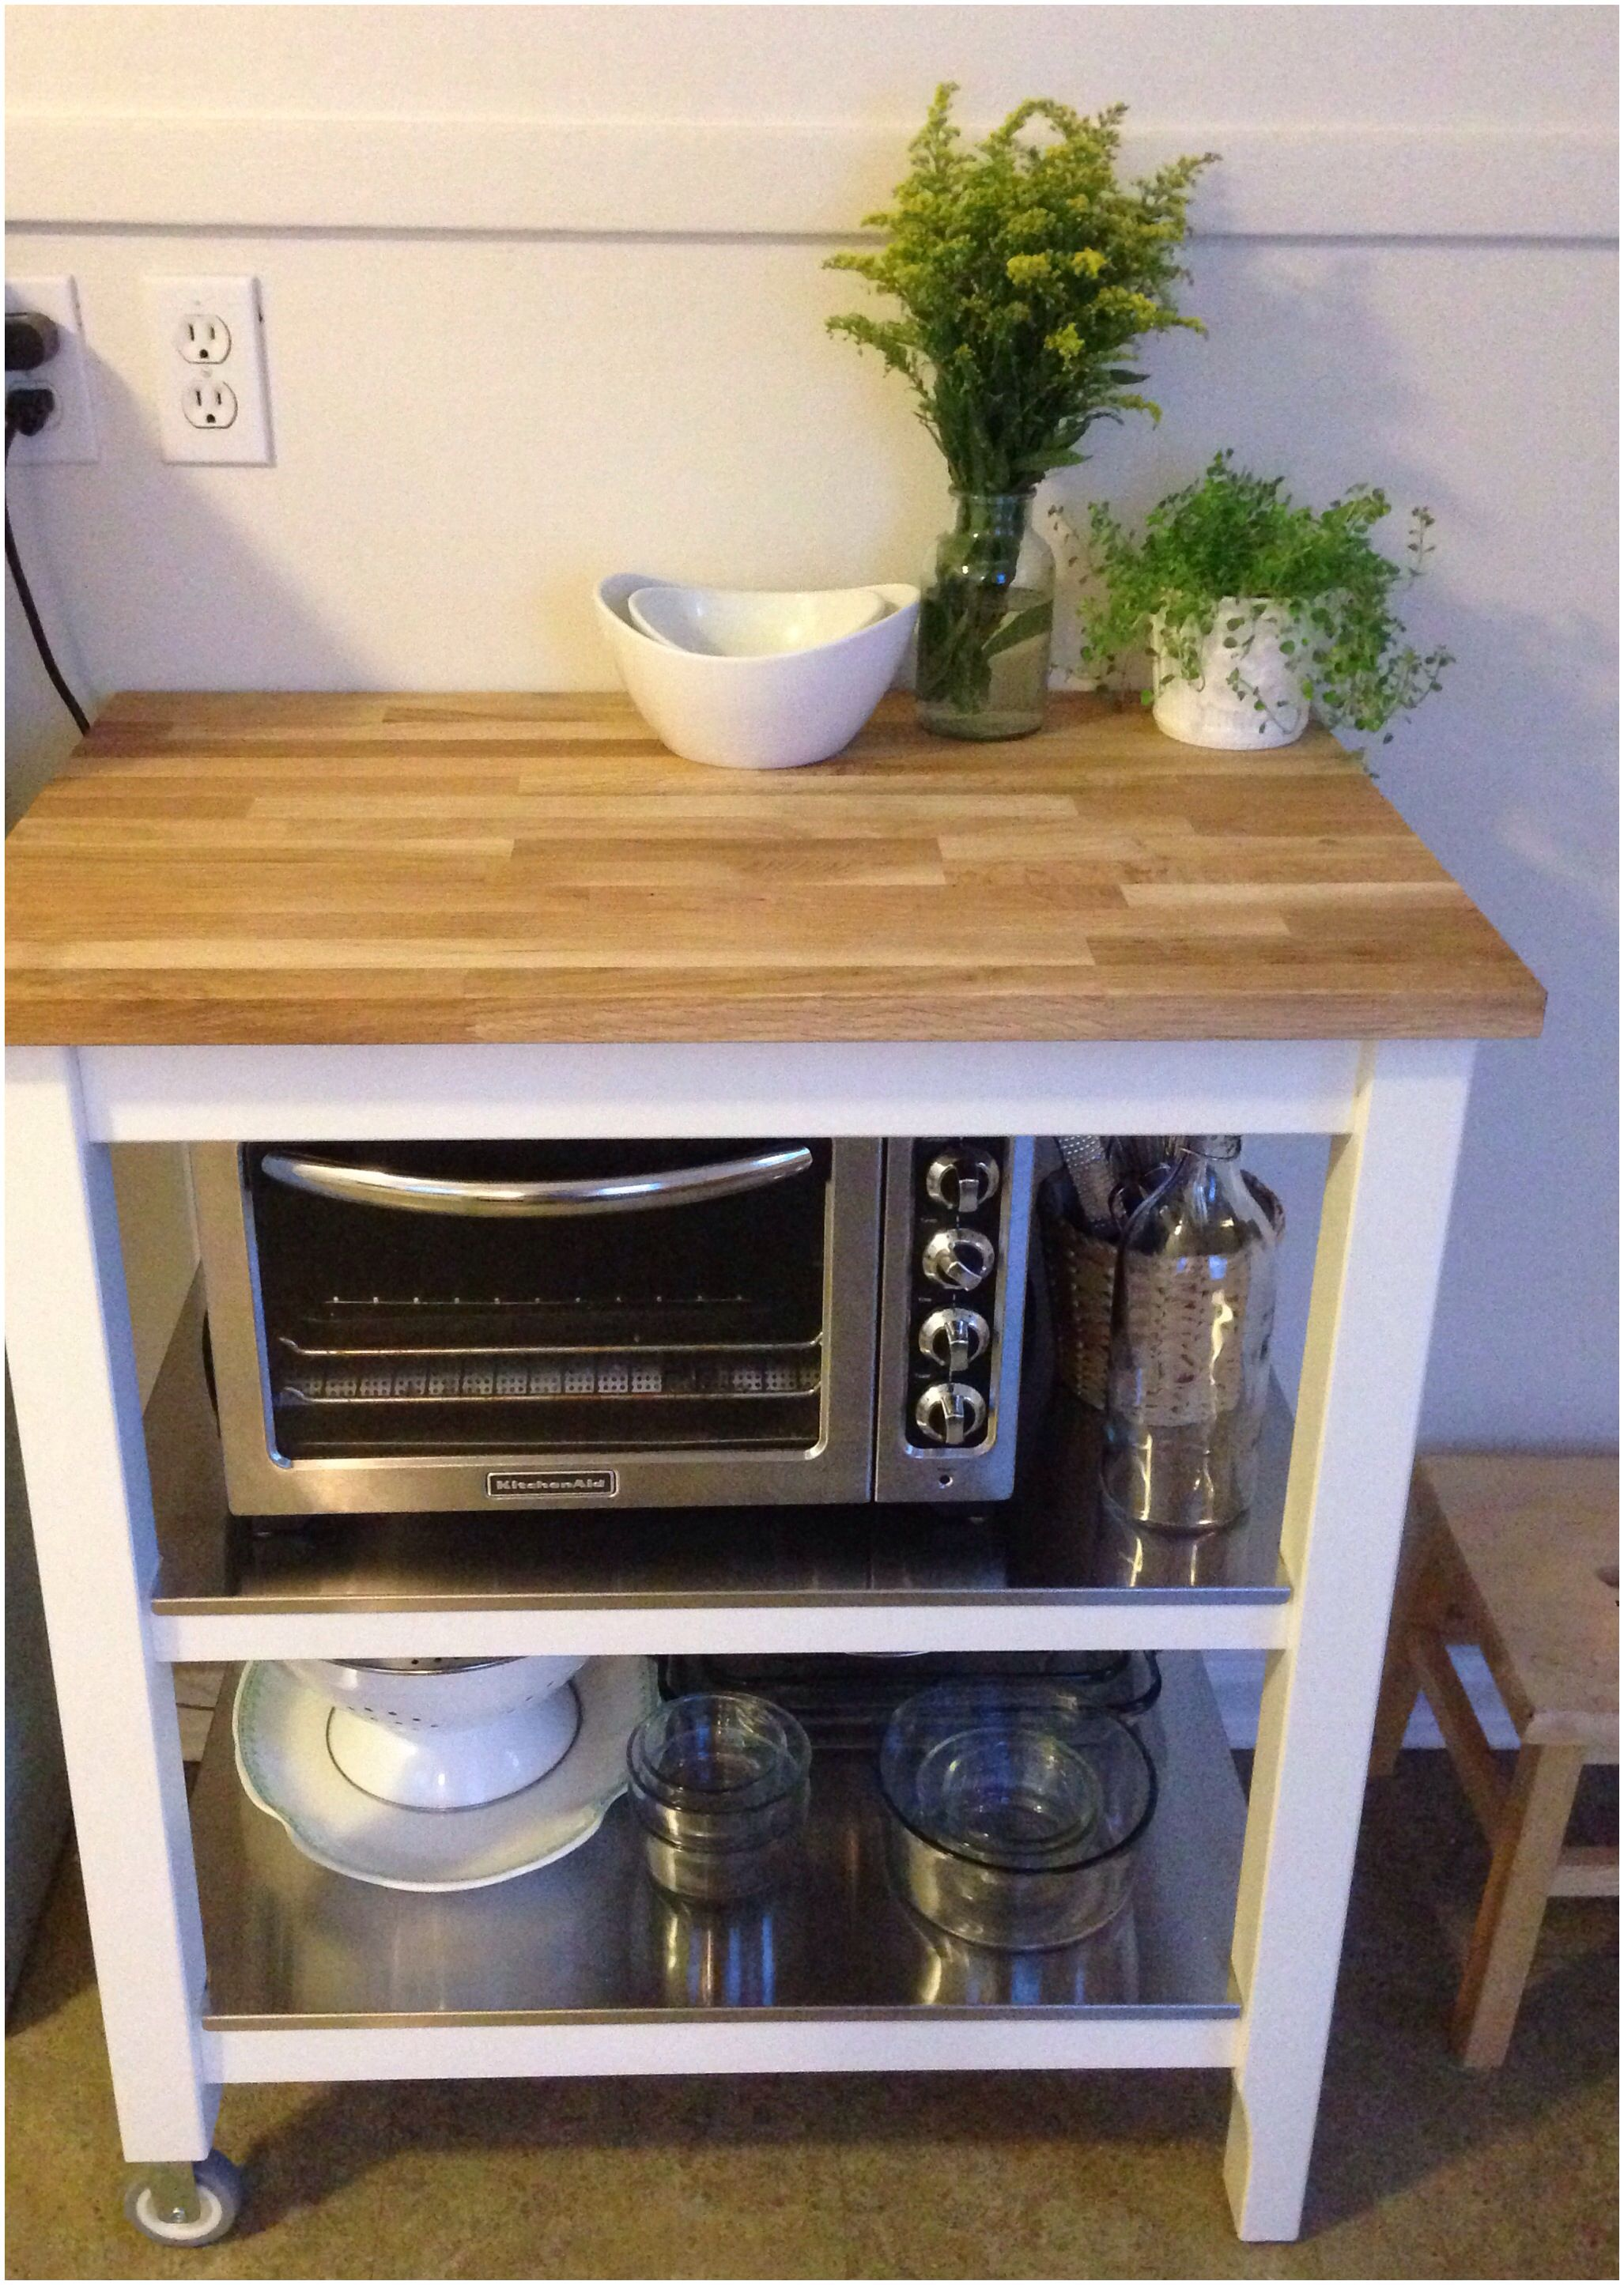 Ikea Küchen Stenstorp My New Ikea Stenstorp Kitchen Cart Is Everything I Dreamed